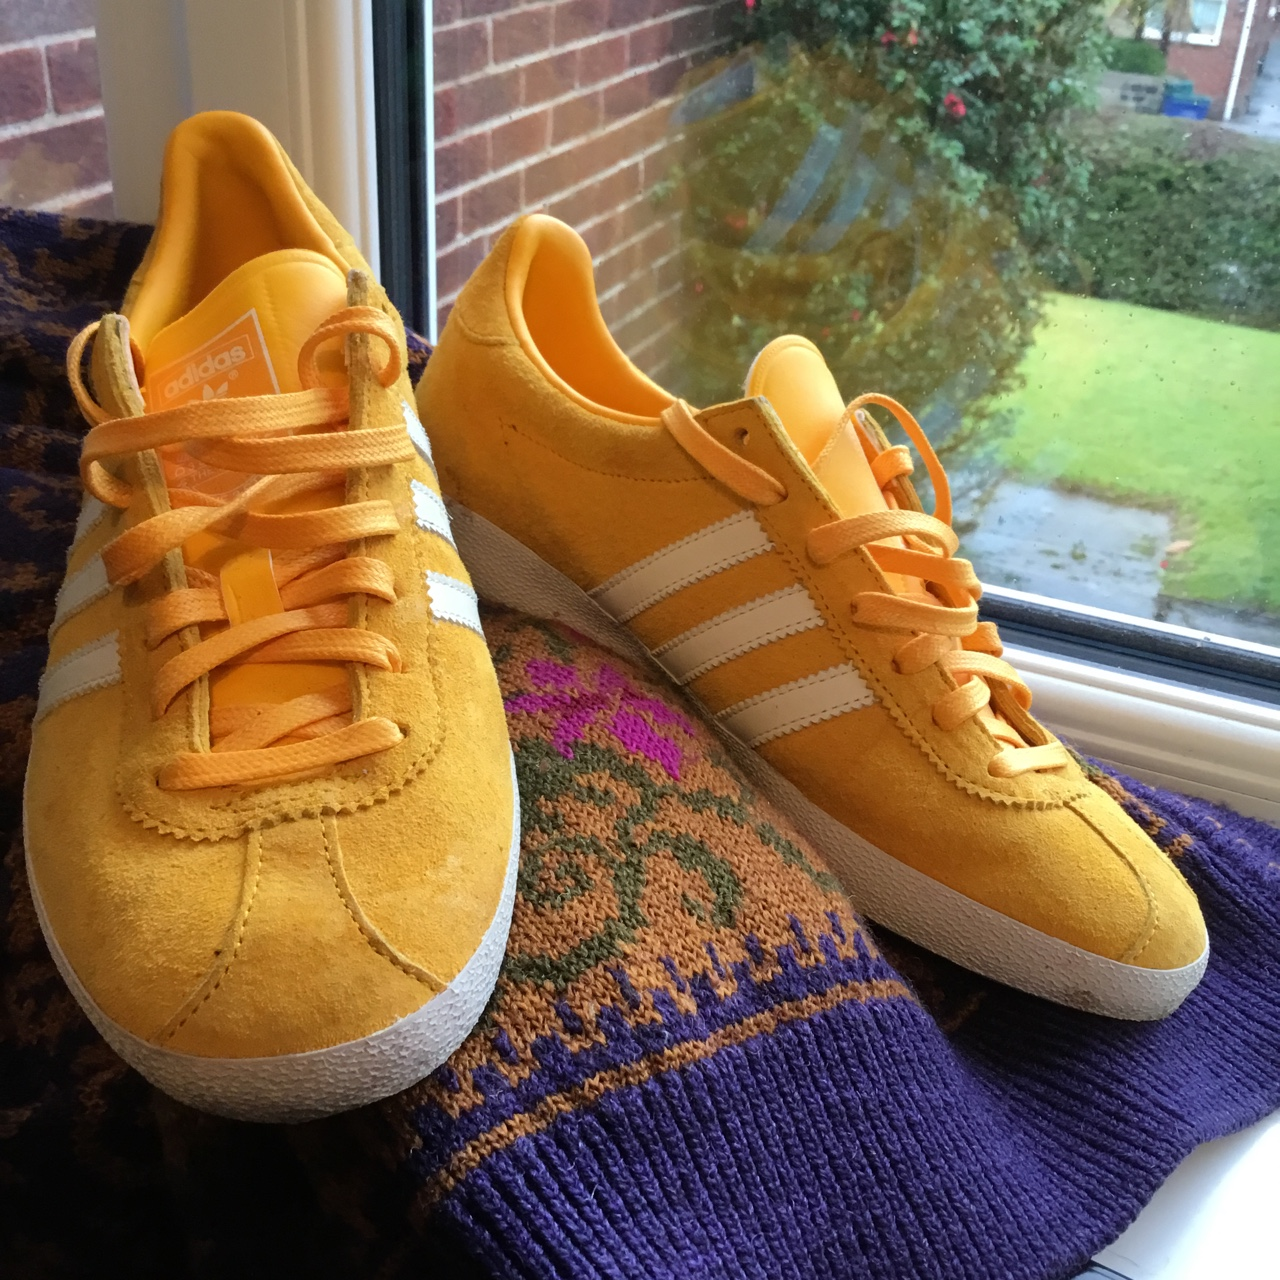 Anybody know where i can buy a pair of yellow adidas gazelle